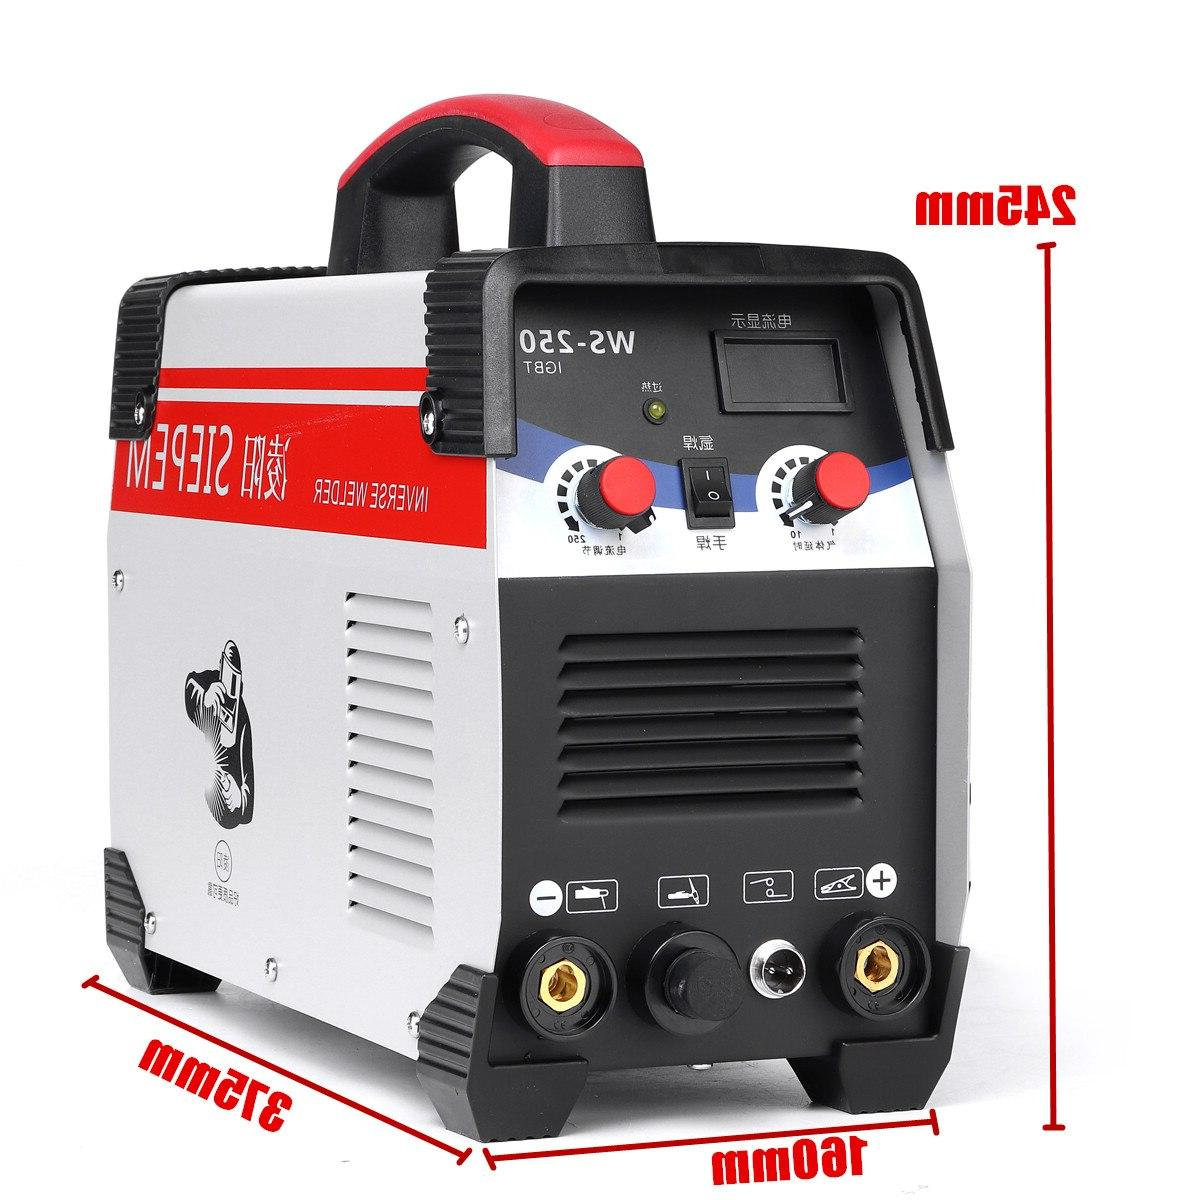 2In1 Arc Welding 220V for Welding Working Electric Working Power Tools